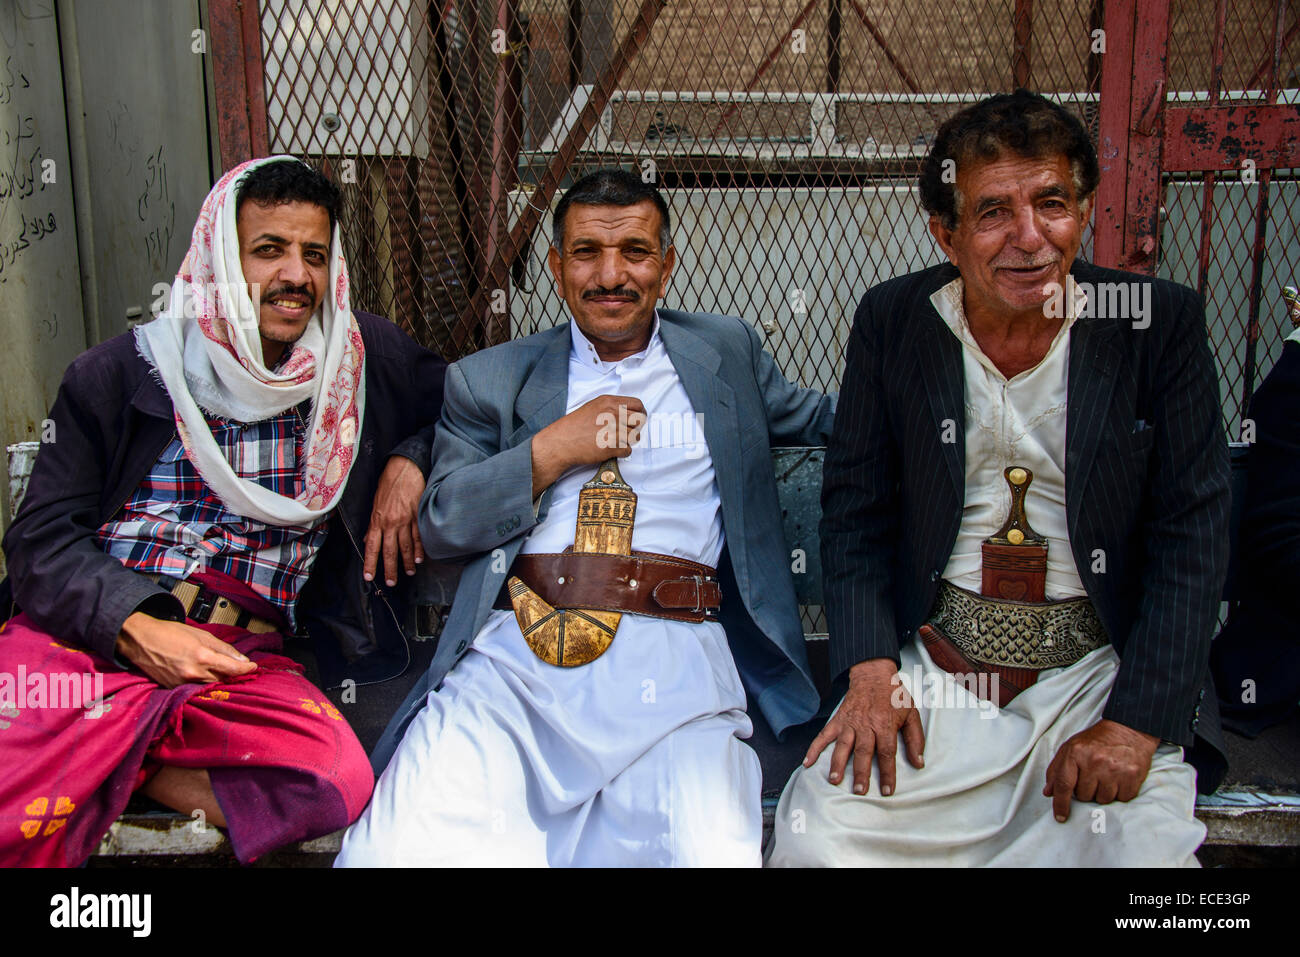 Men with their djambias sitting in front of a house in the old city, Sana'a, Yemen - Stock Image